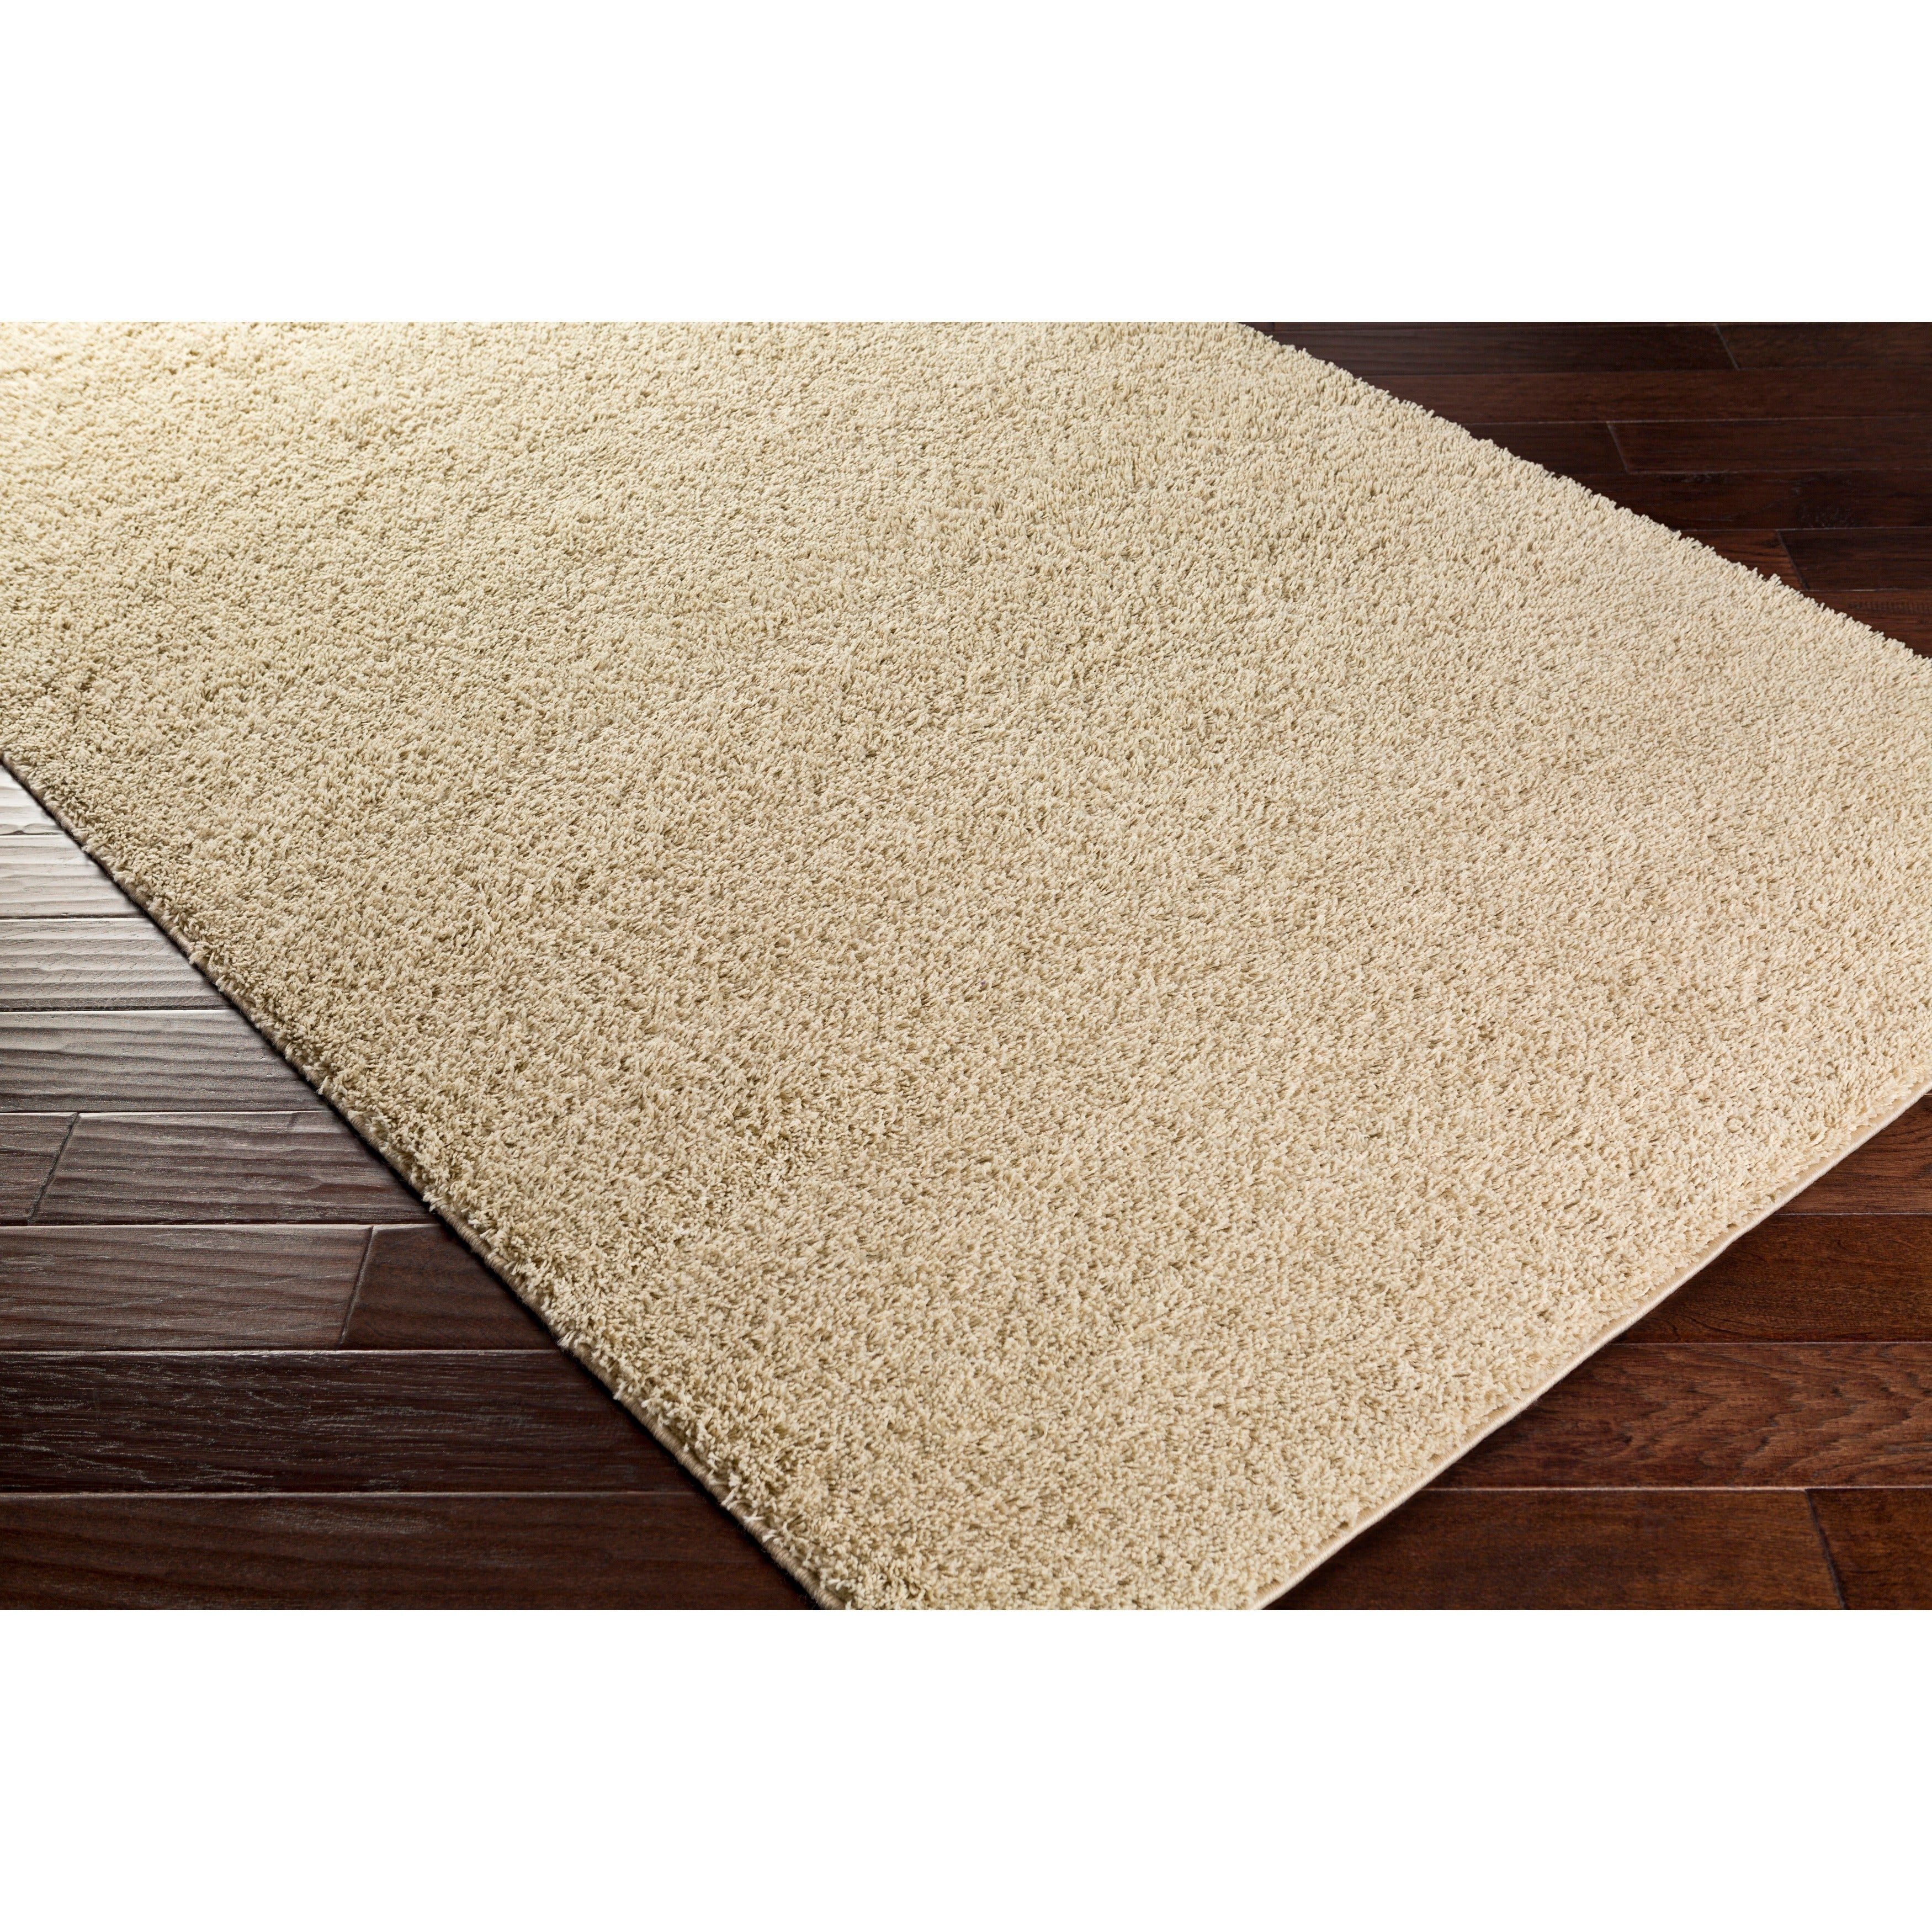 Tamworth Area Rug 9 X 12 On Free Shipping Today Com 10670223